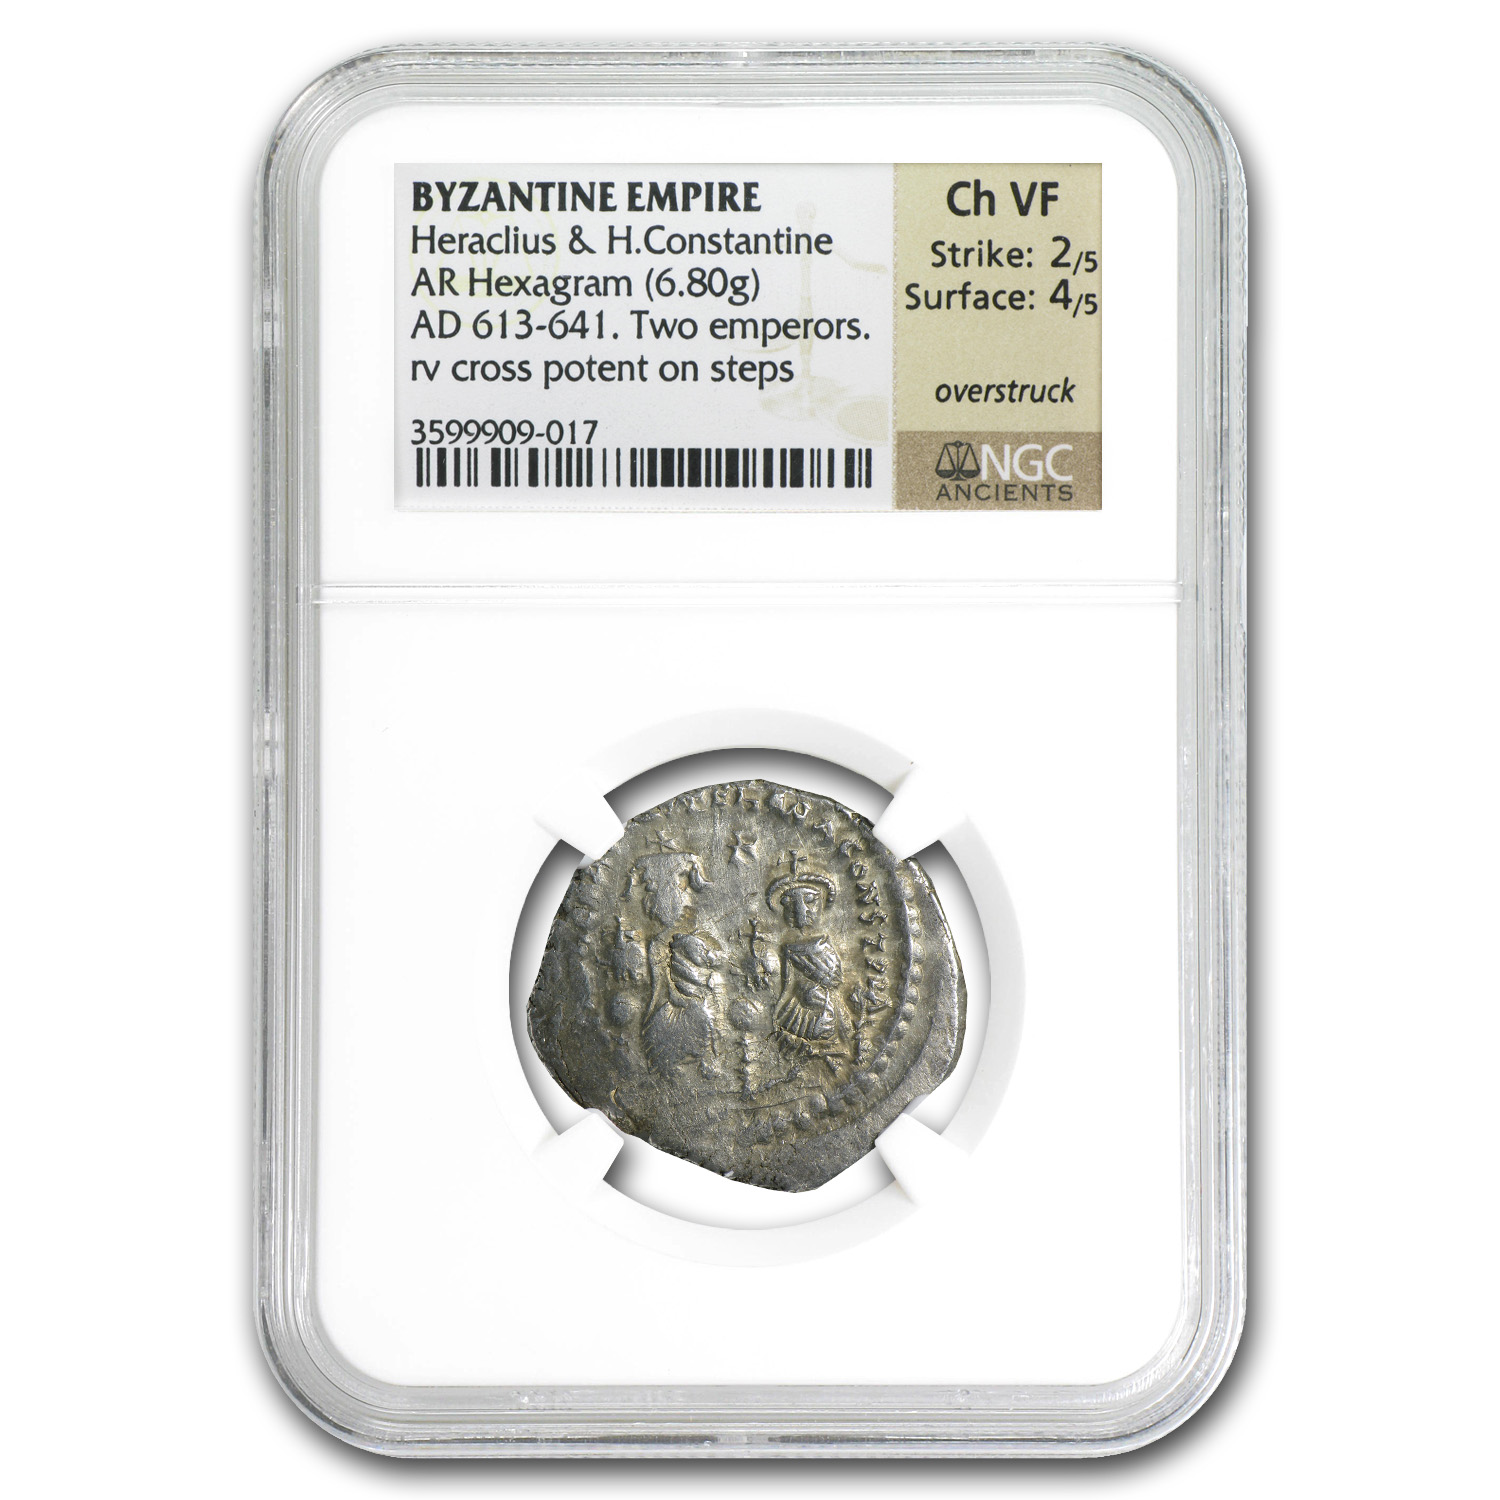 Byzantine Silver of HeracIius & H.Const. (613-641 AD) NGC-ChVF